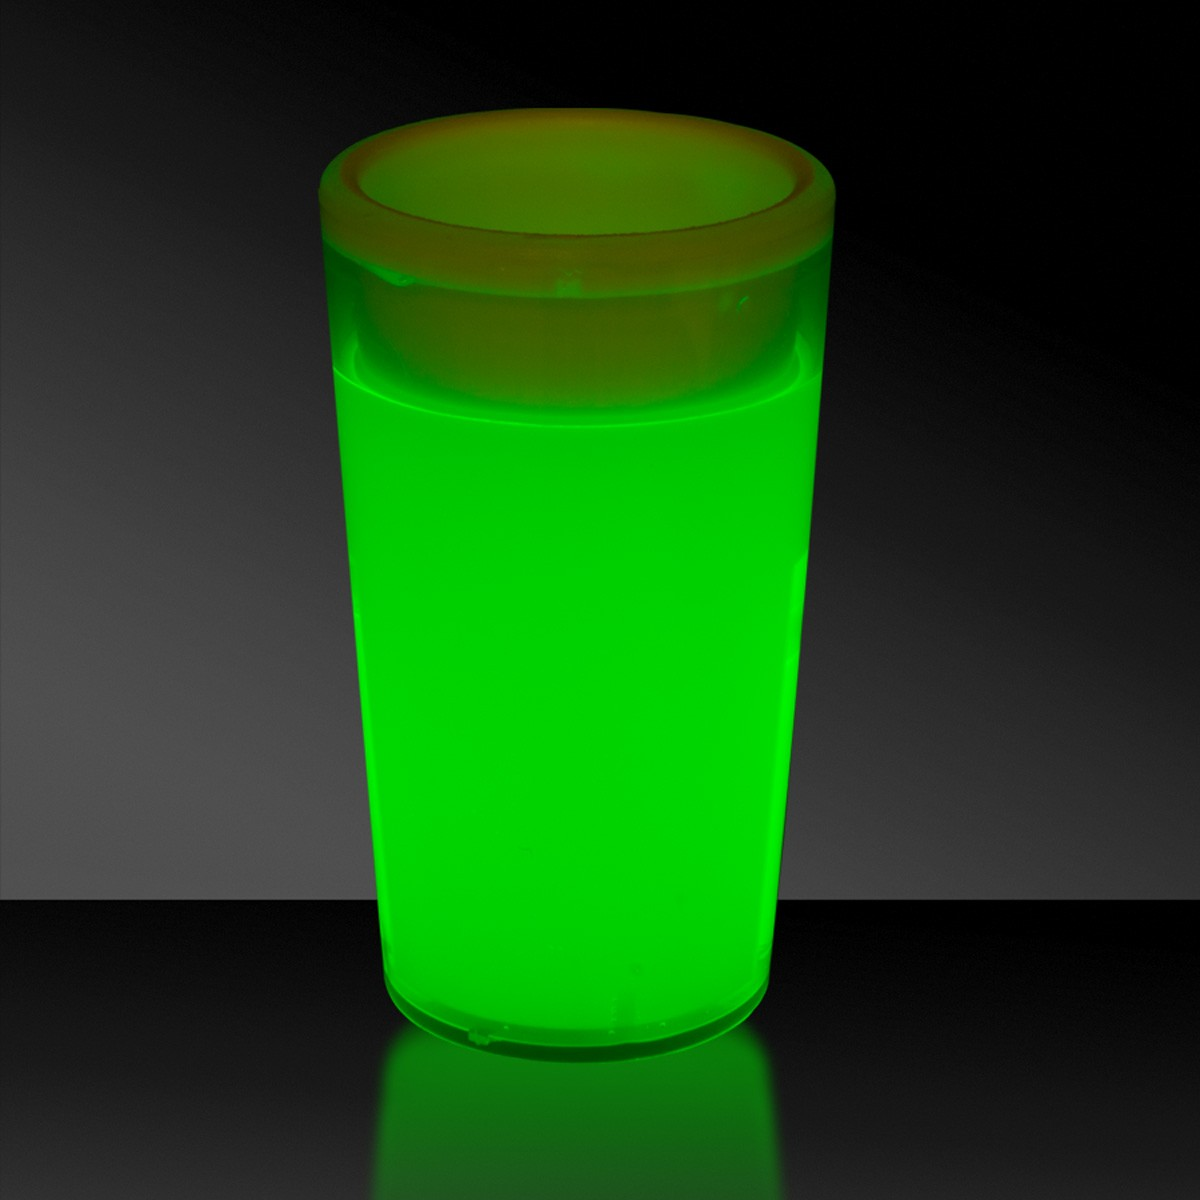 GREEN-TAPERED GLOW SHOT GLASS